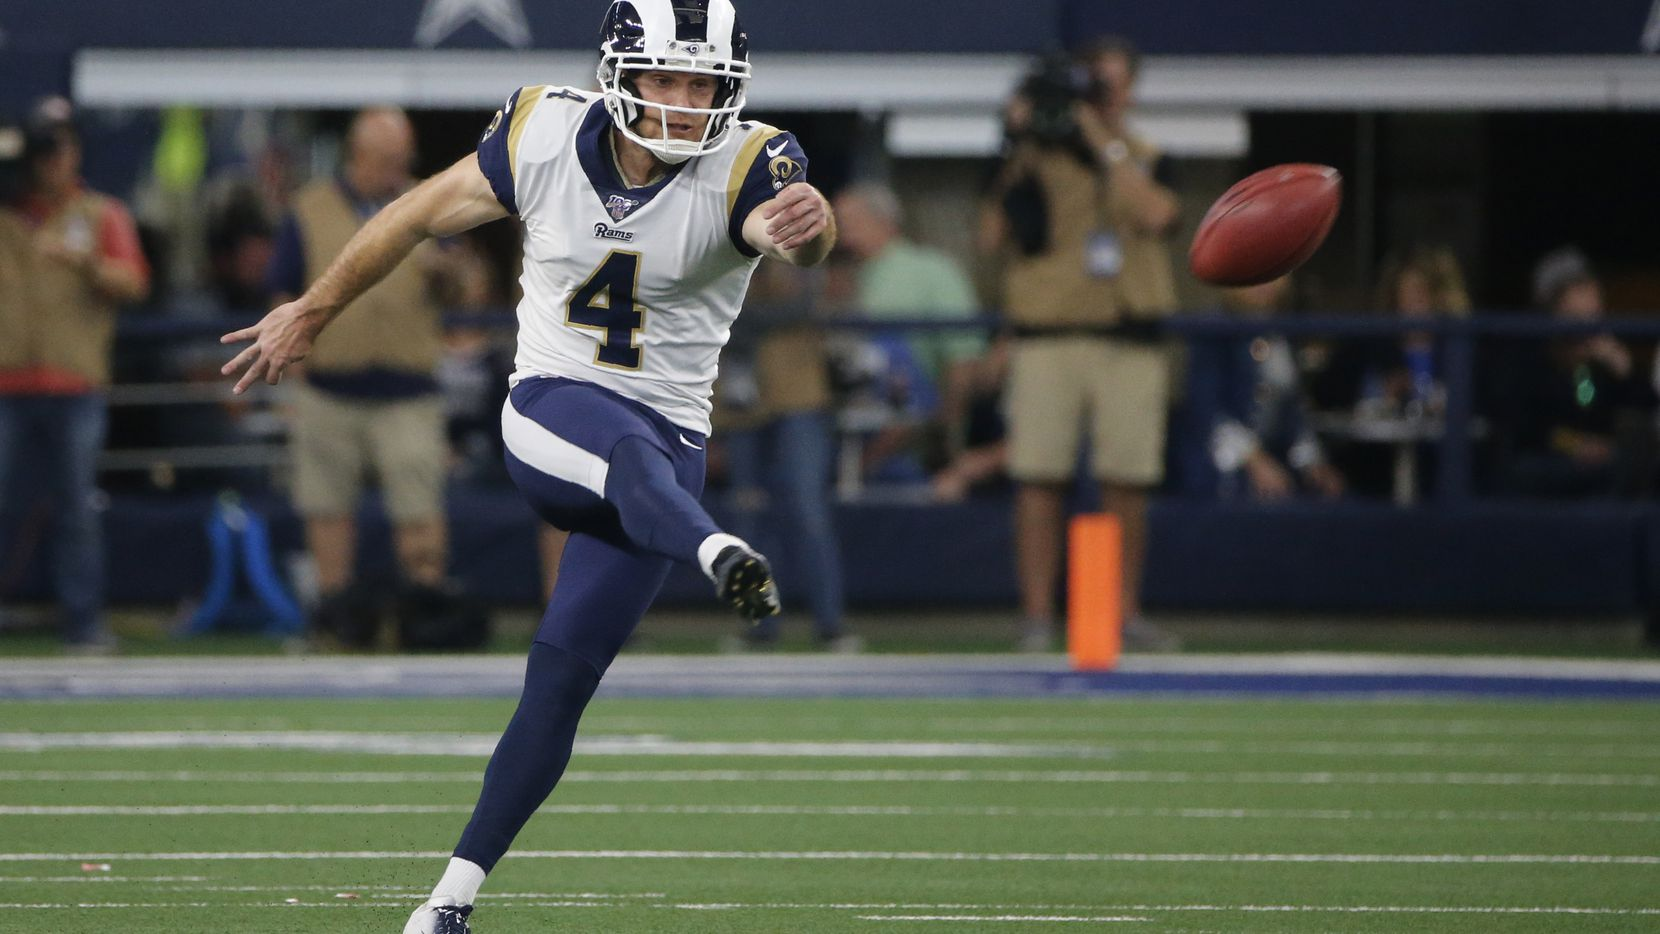 FILE - In this Dec. 15, 2019 file photo, Los Angeles Rams kicker Greg Zuerlein (4) kicks during a game against the Cowboys in Arlington. (AP Photo)